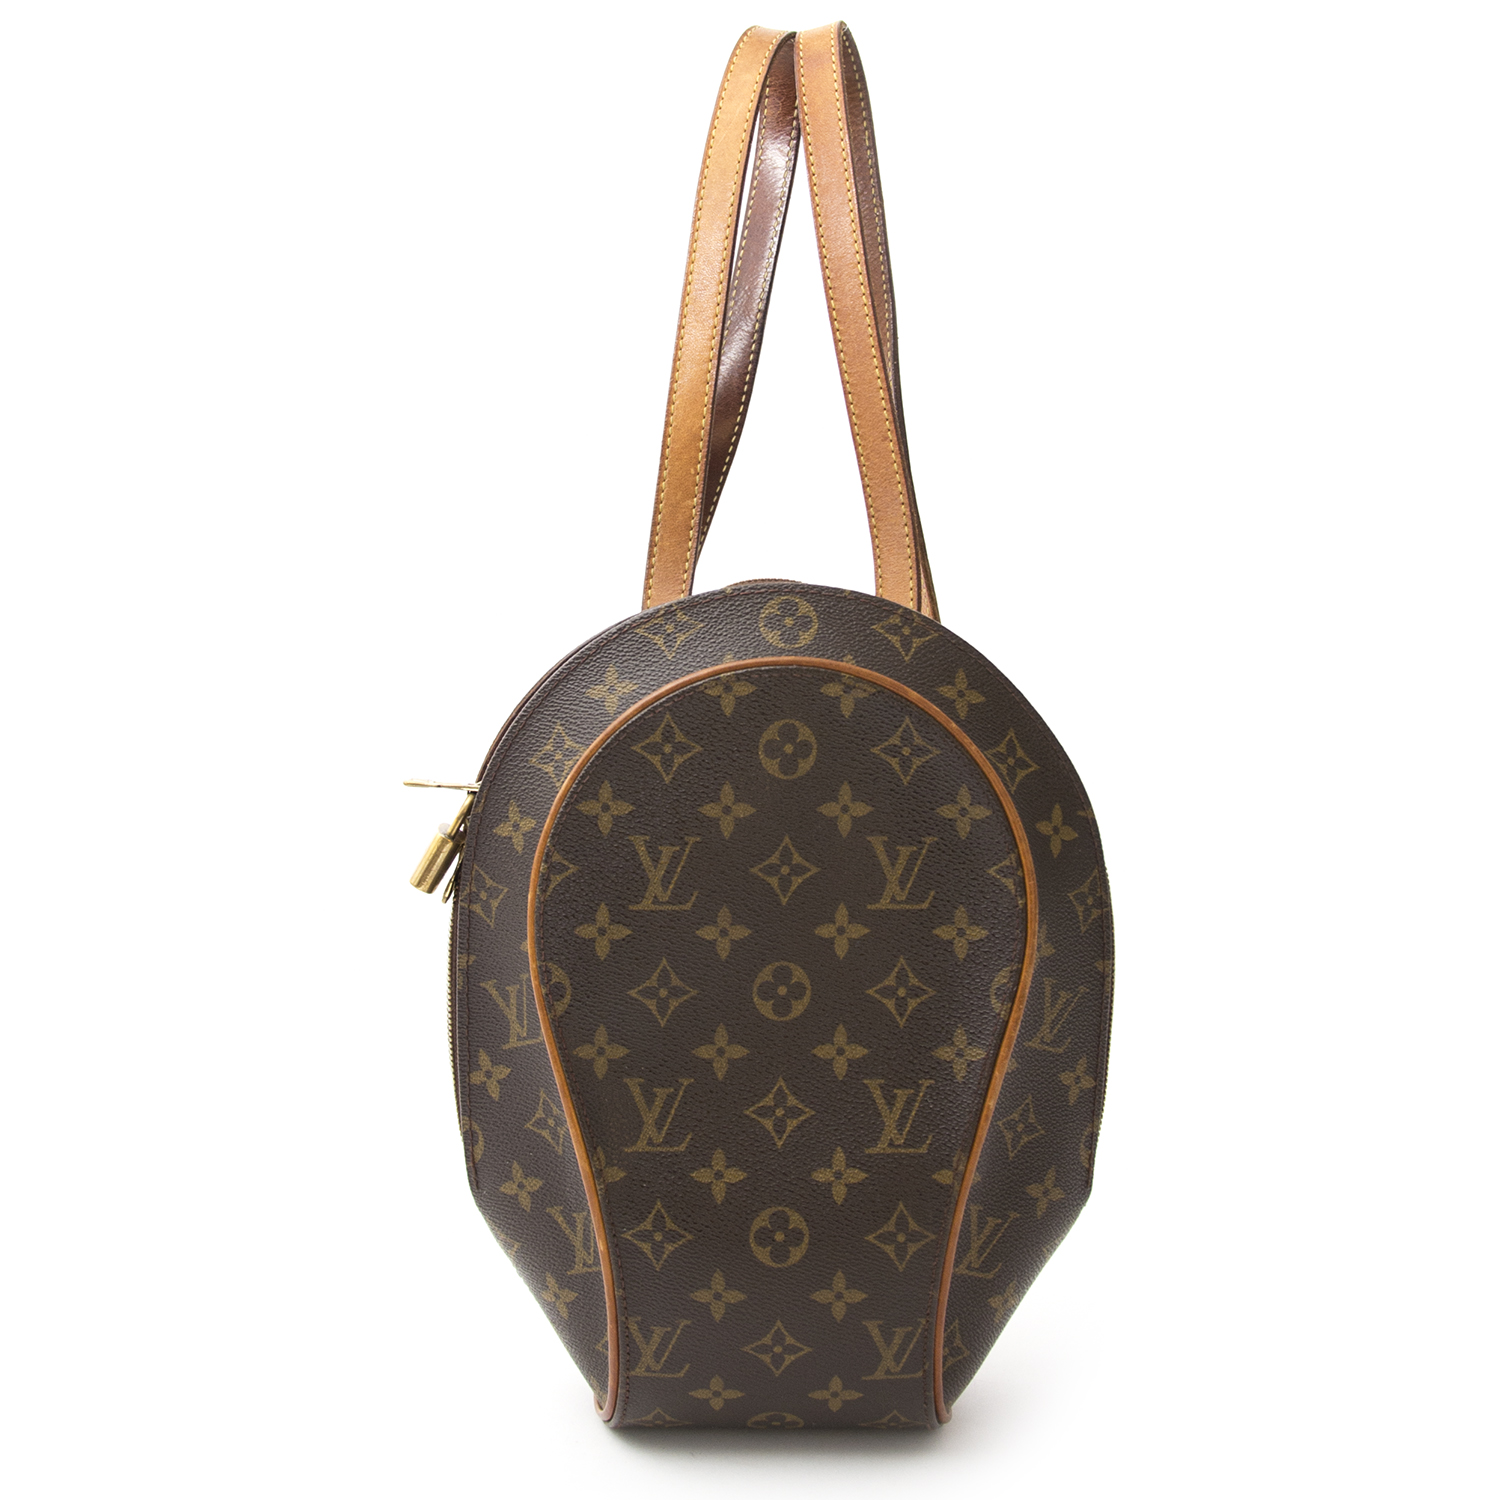 211d75212a63 Safe and secure Vintage Louis Vuitton monogram Eclipse backpack for the  best price at Labellov webshop. Safe and